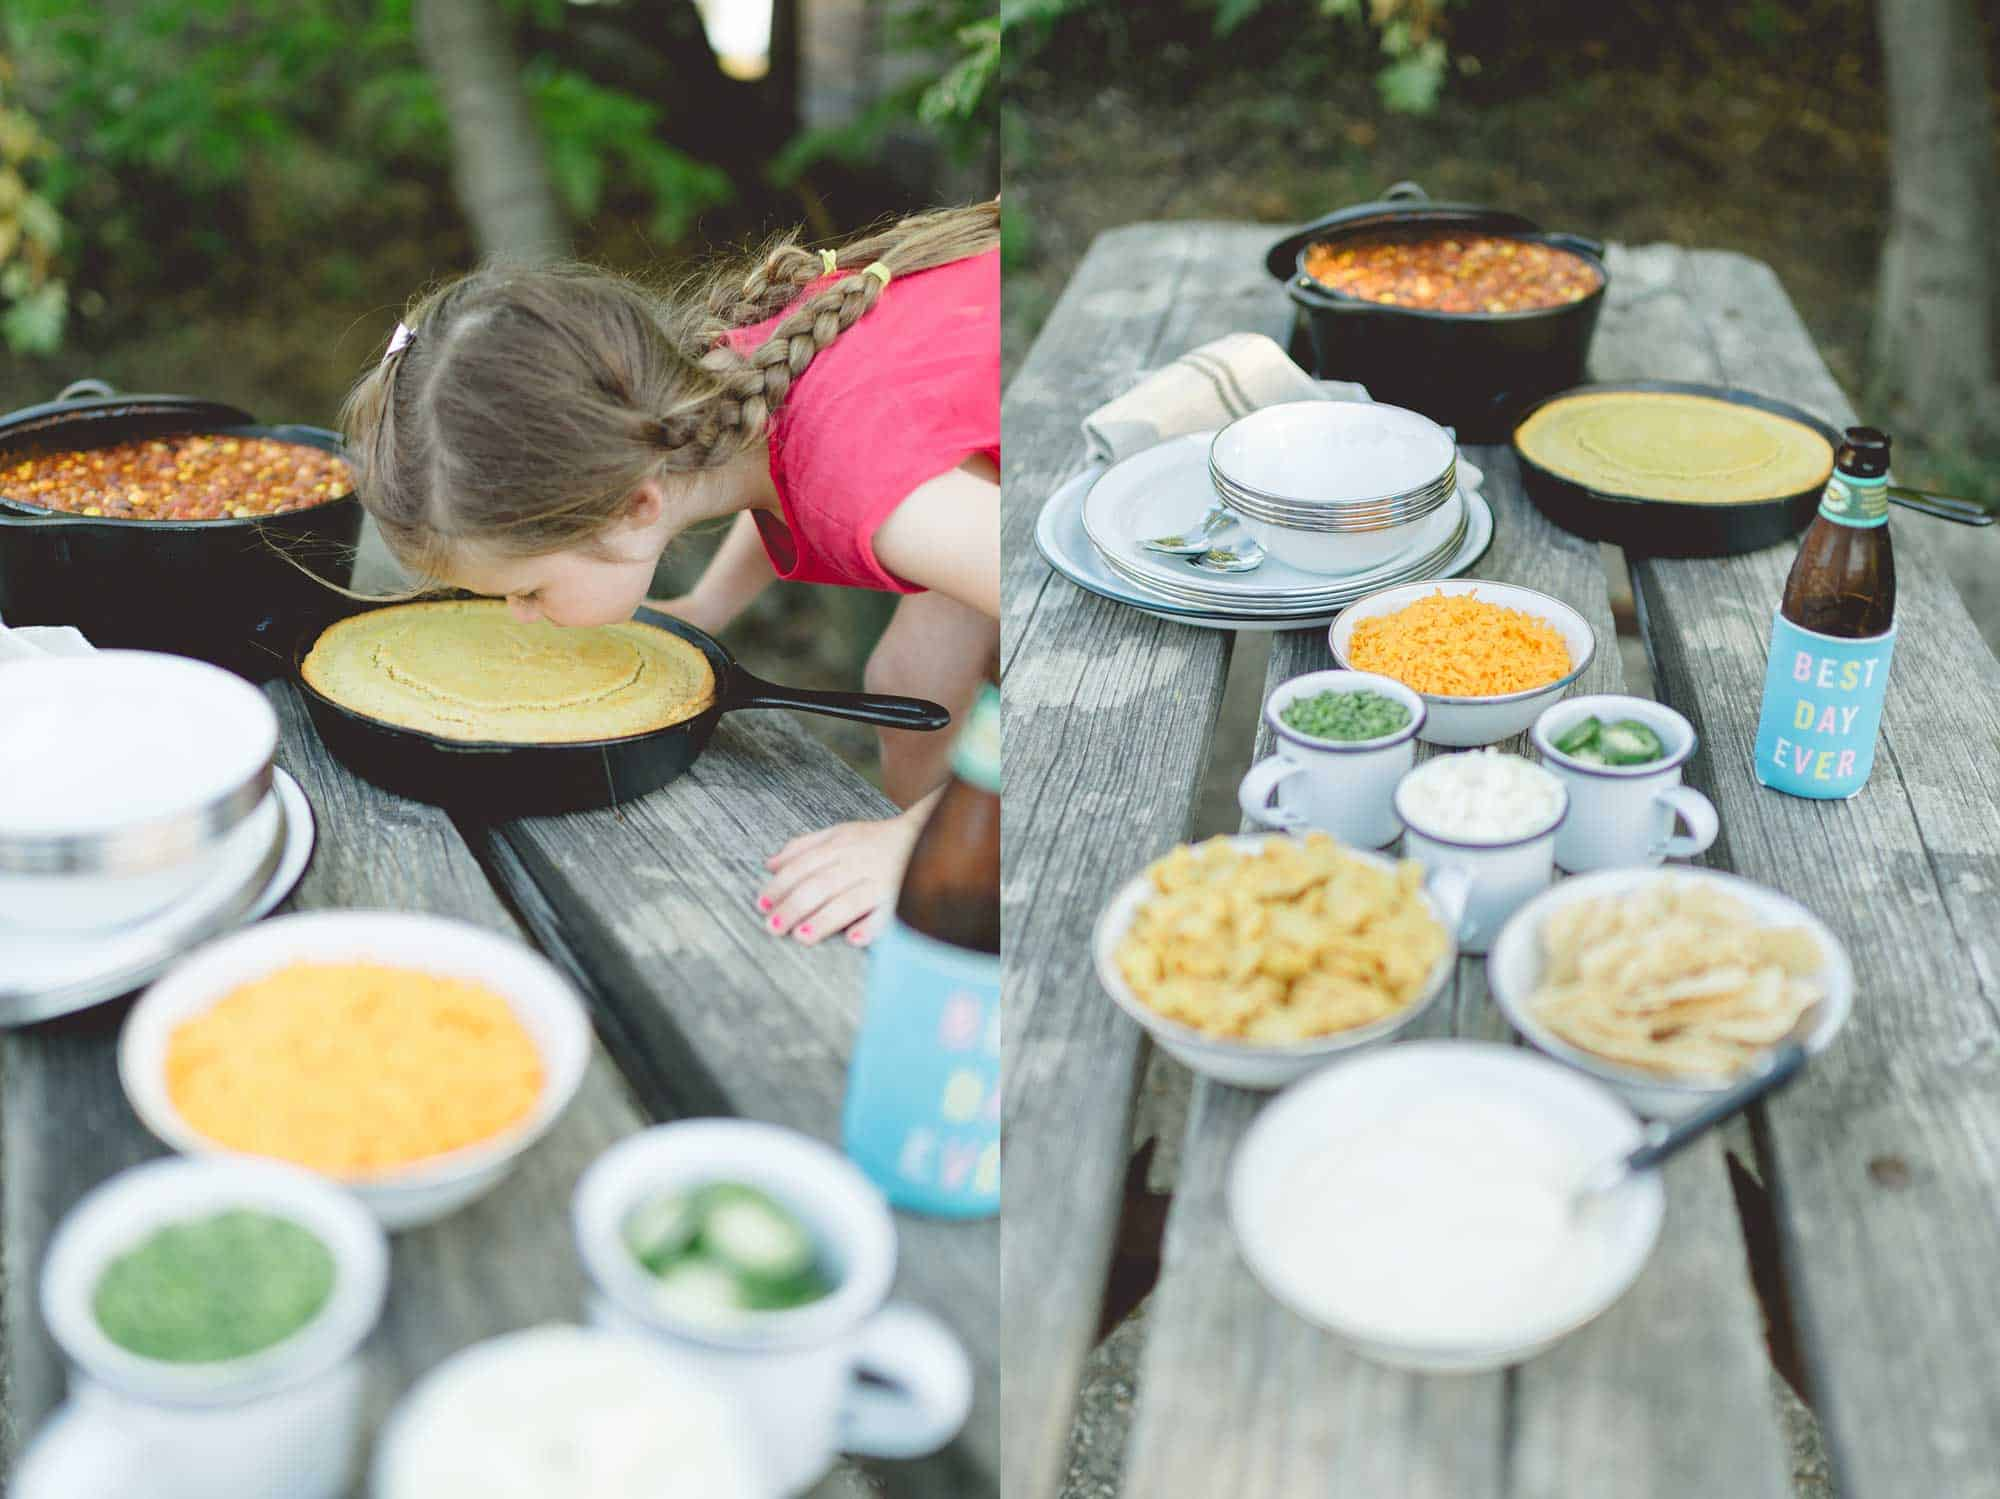 Chili & Cornbread by Tiffani Thiessen • Photography by Rebecca Sanabria